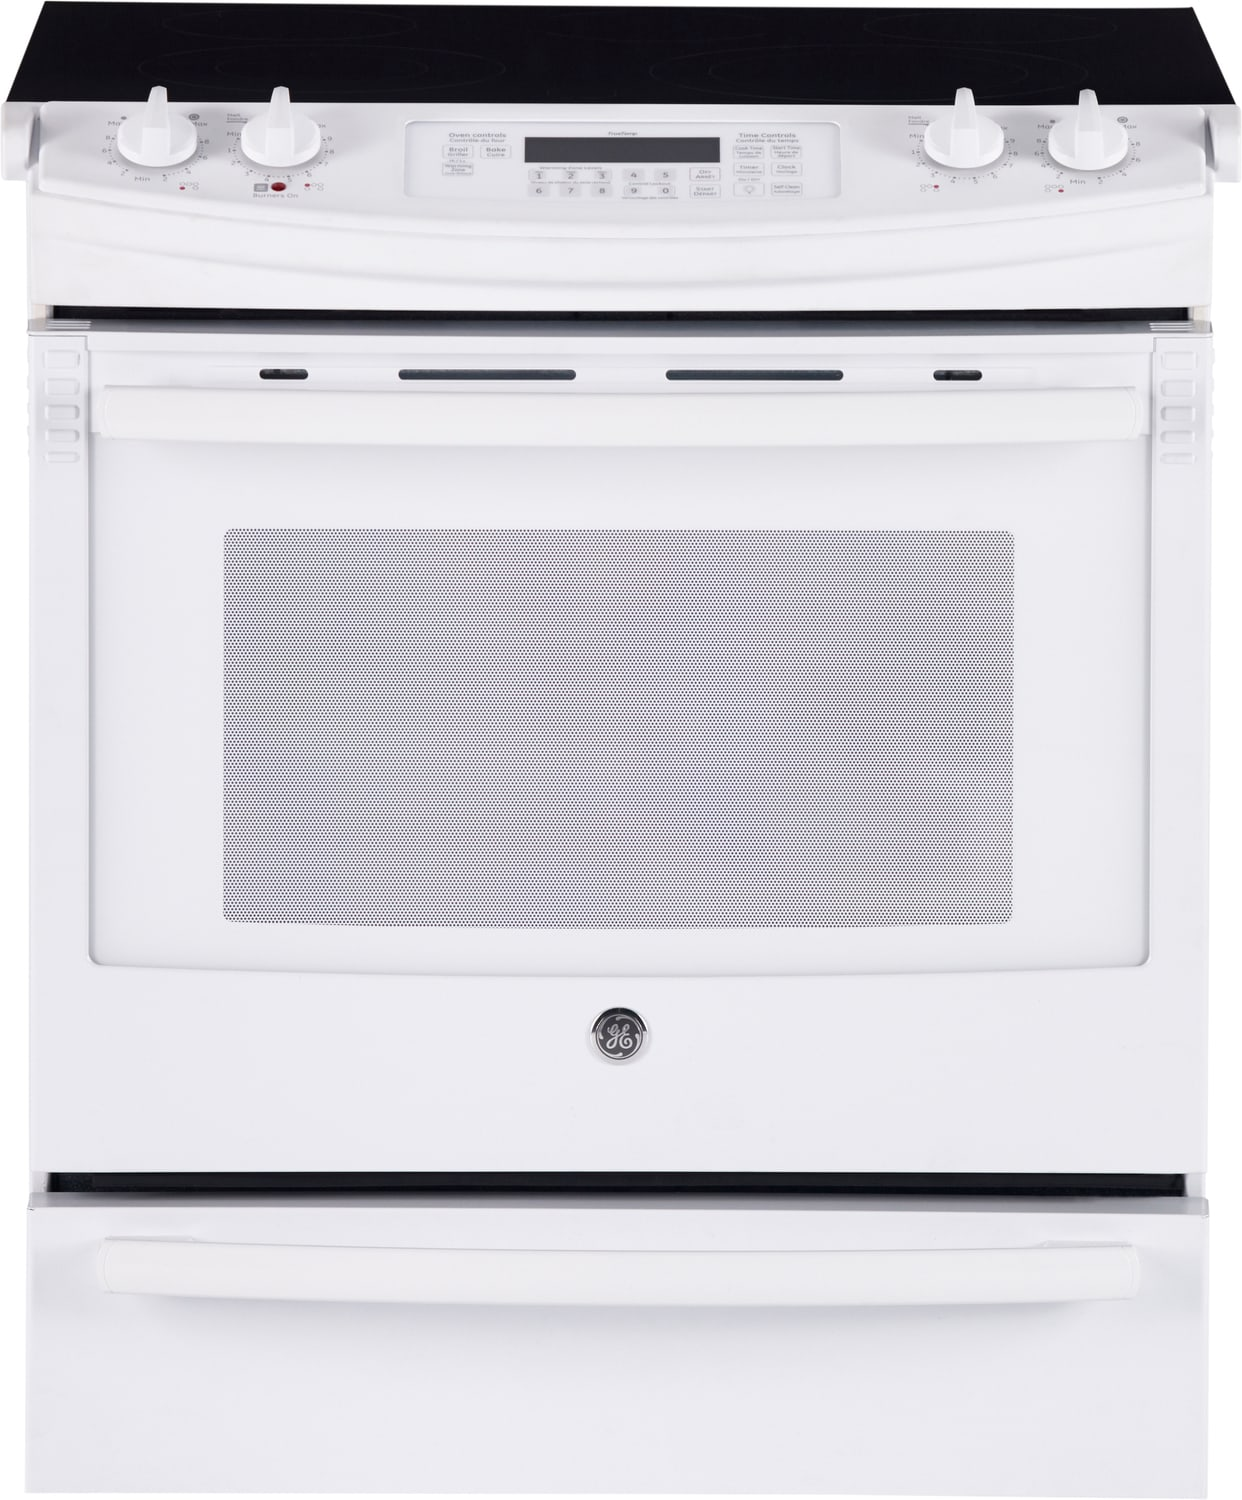 GE White Slide-In Electric Convection Range (5.2 Cu. Ft.) - JCS860DFWW